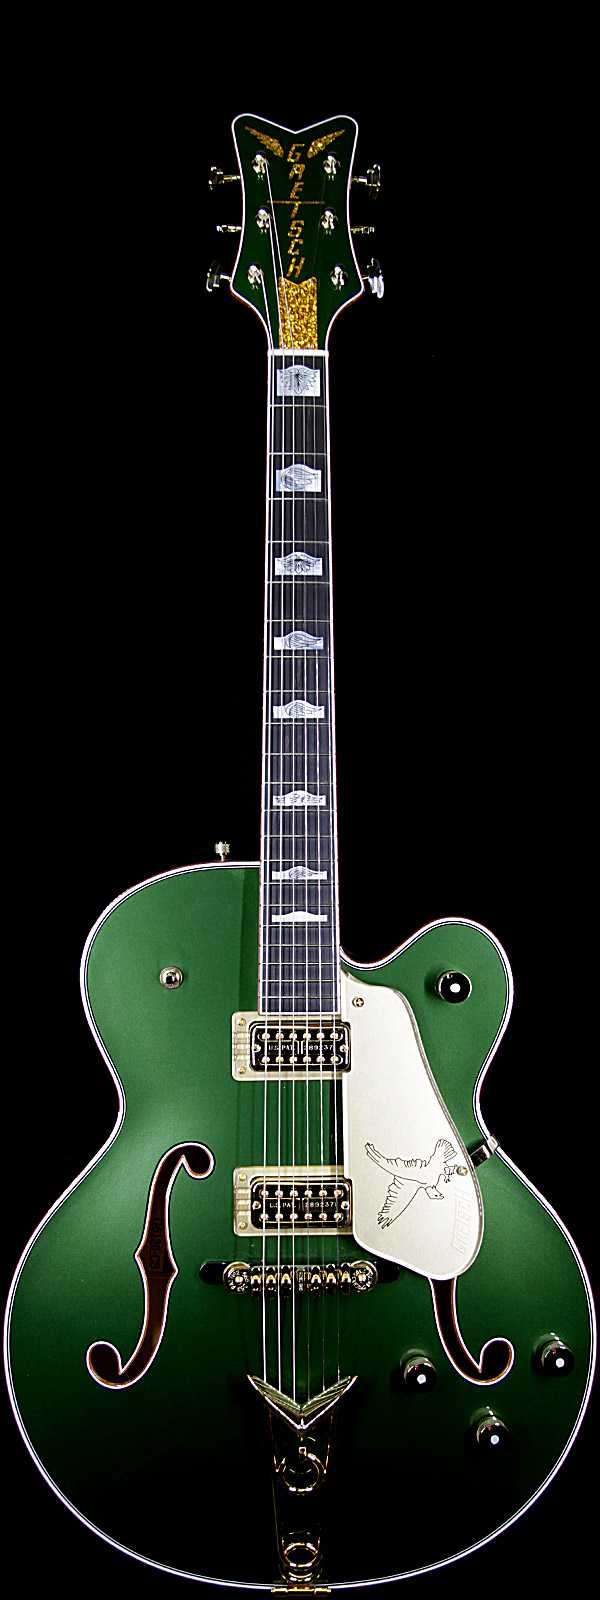 Gretsch USA Custom Shop Stephen Stern Masterbuilt Falcon™ Ebony Fingerboard Cadillac Green